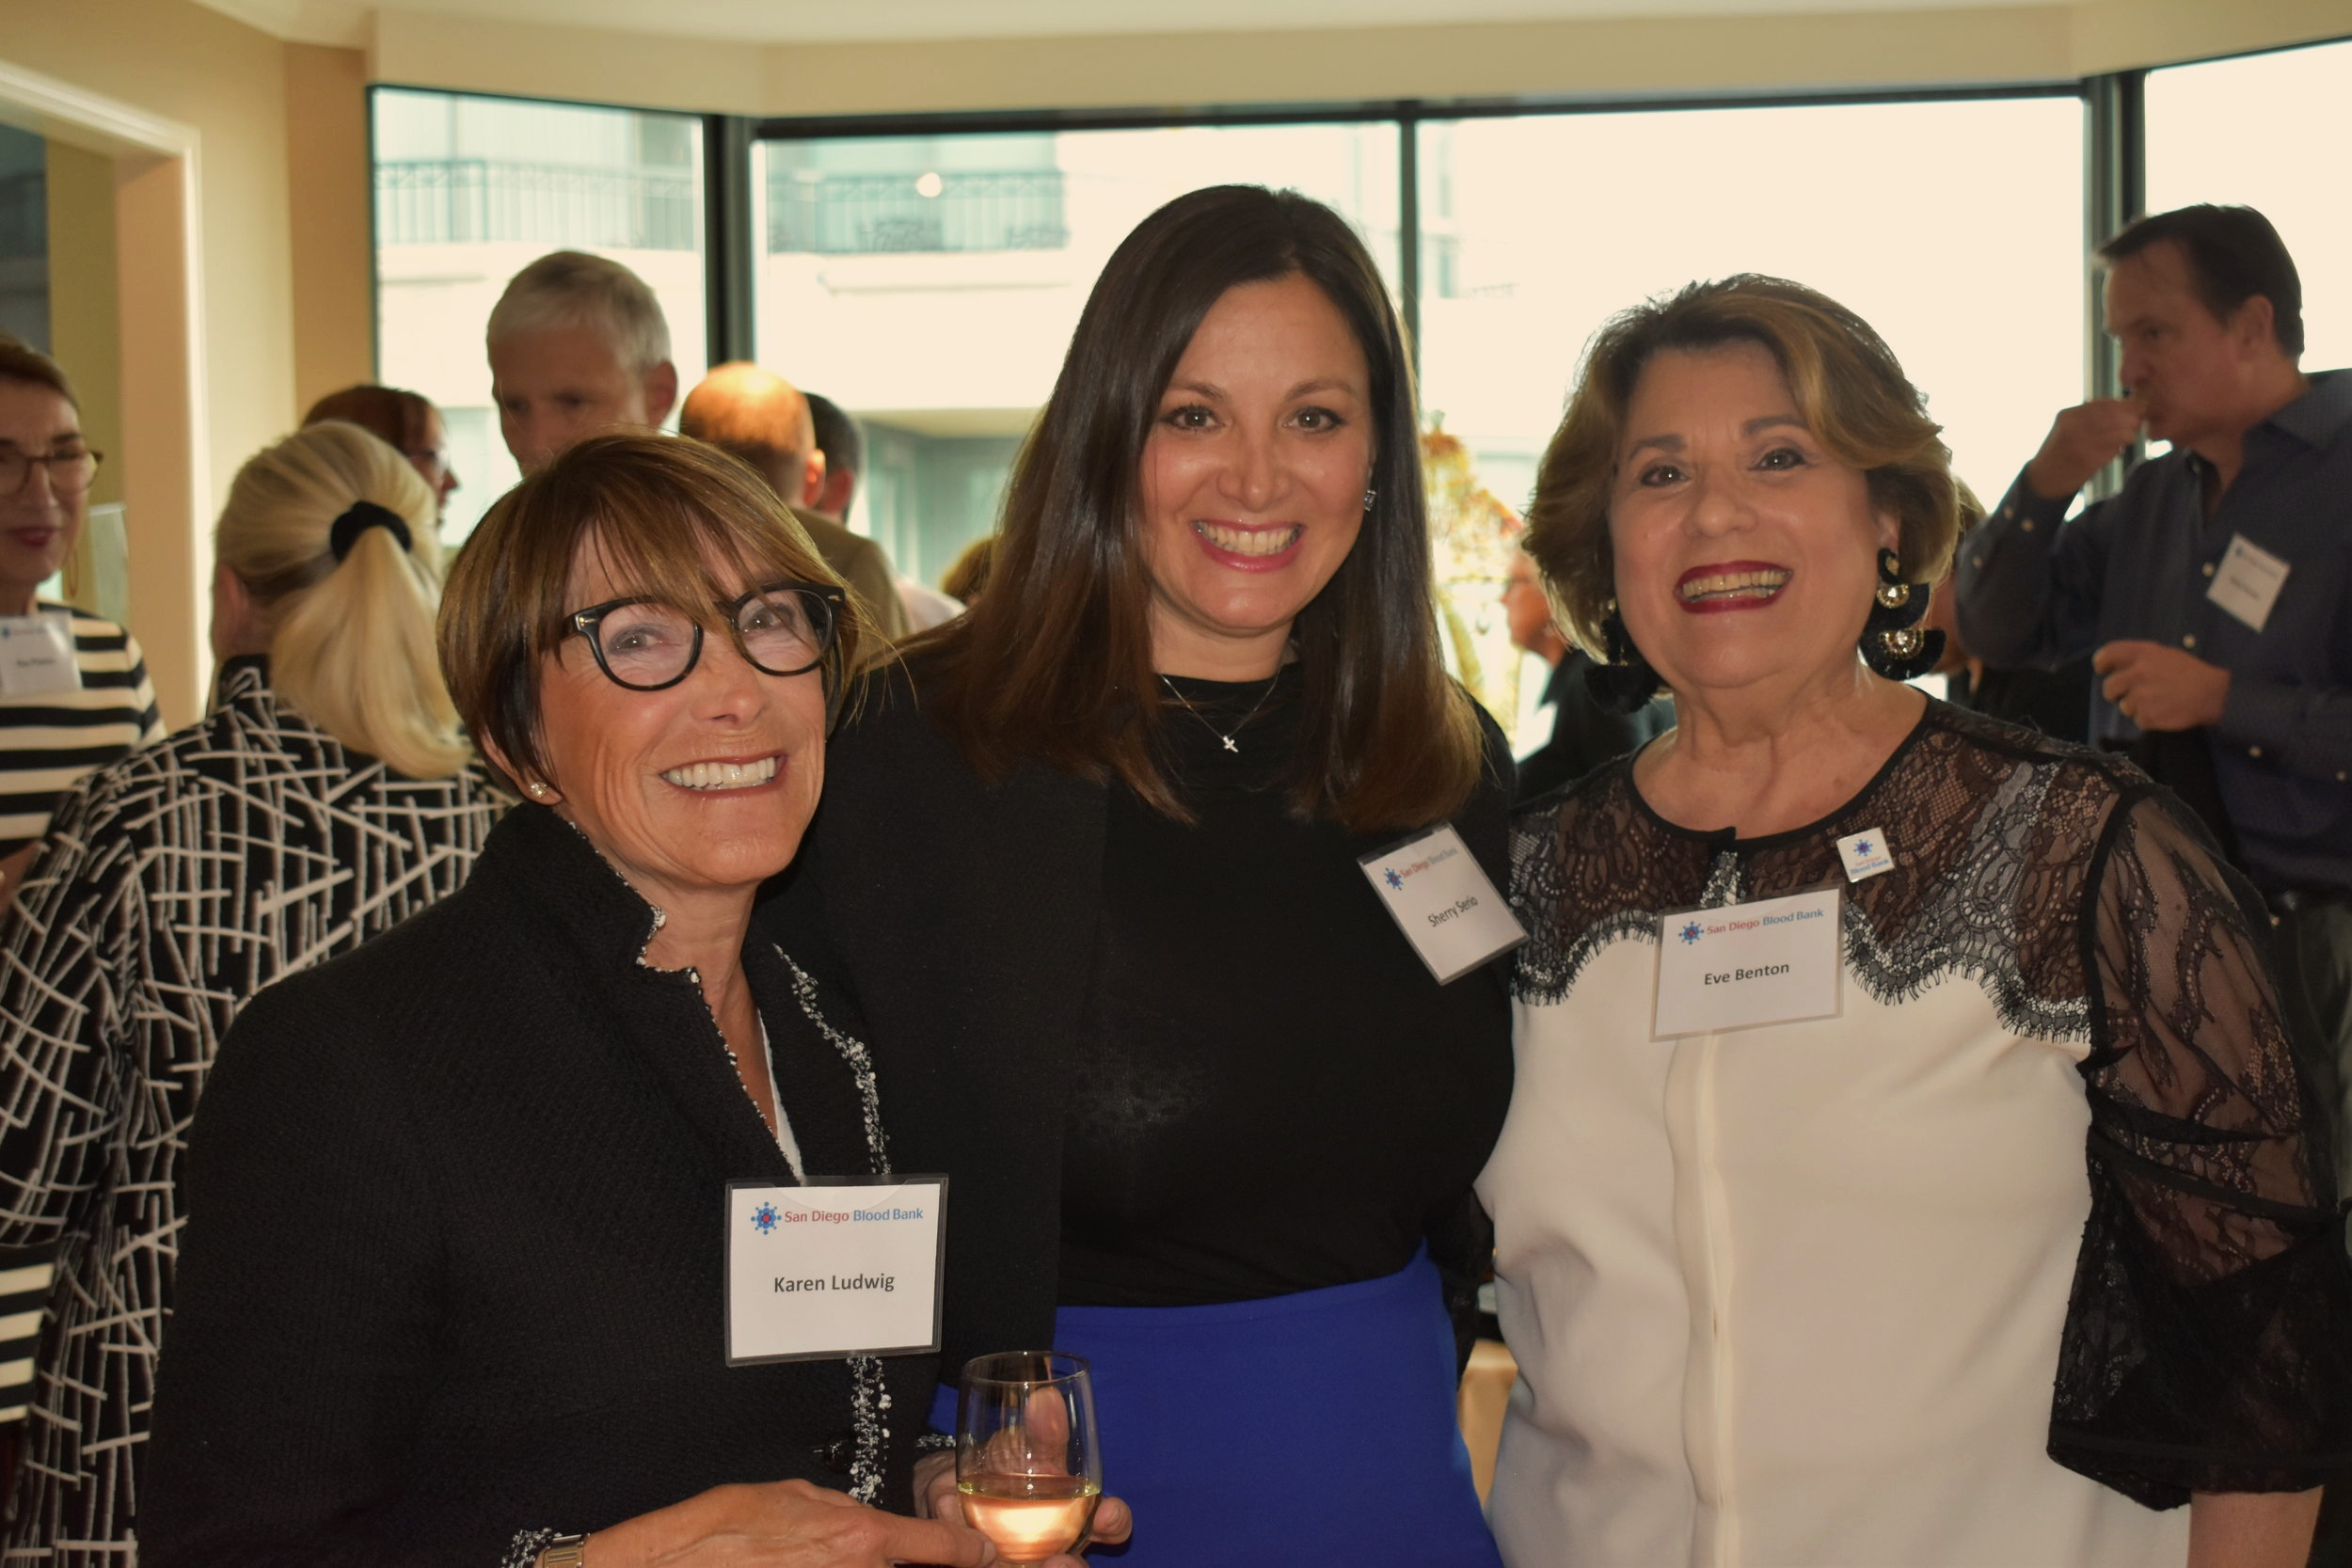 Karen Ludwig, Sherry Serio, and Eve Benton, board member and host